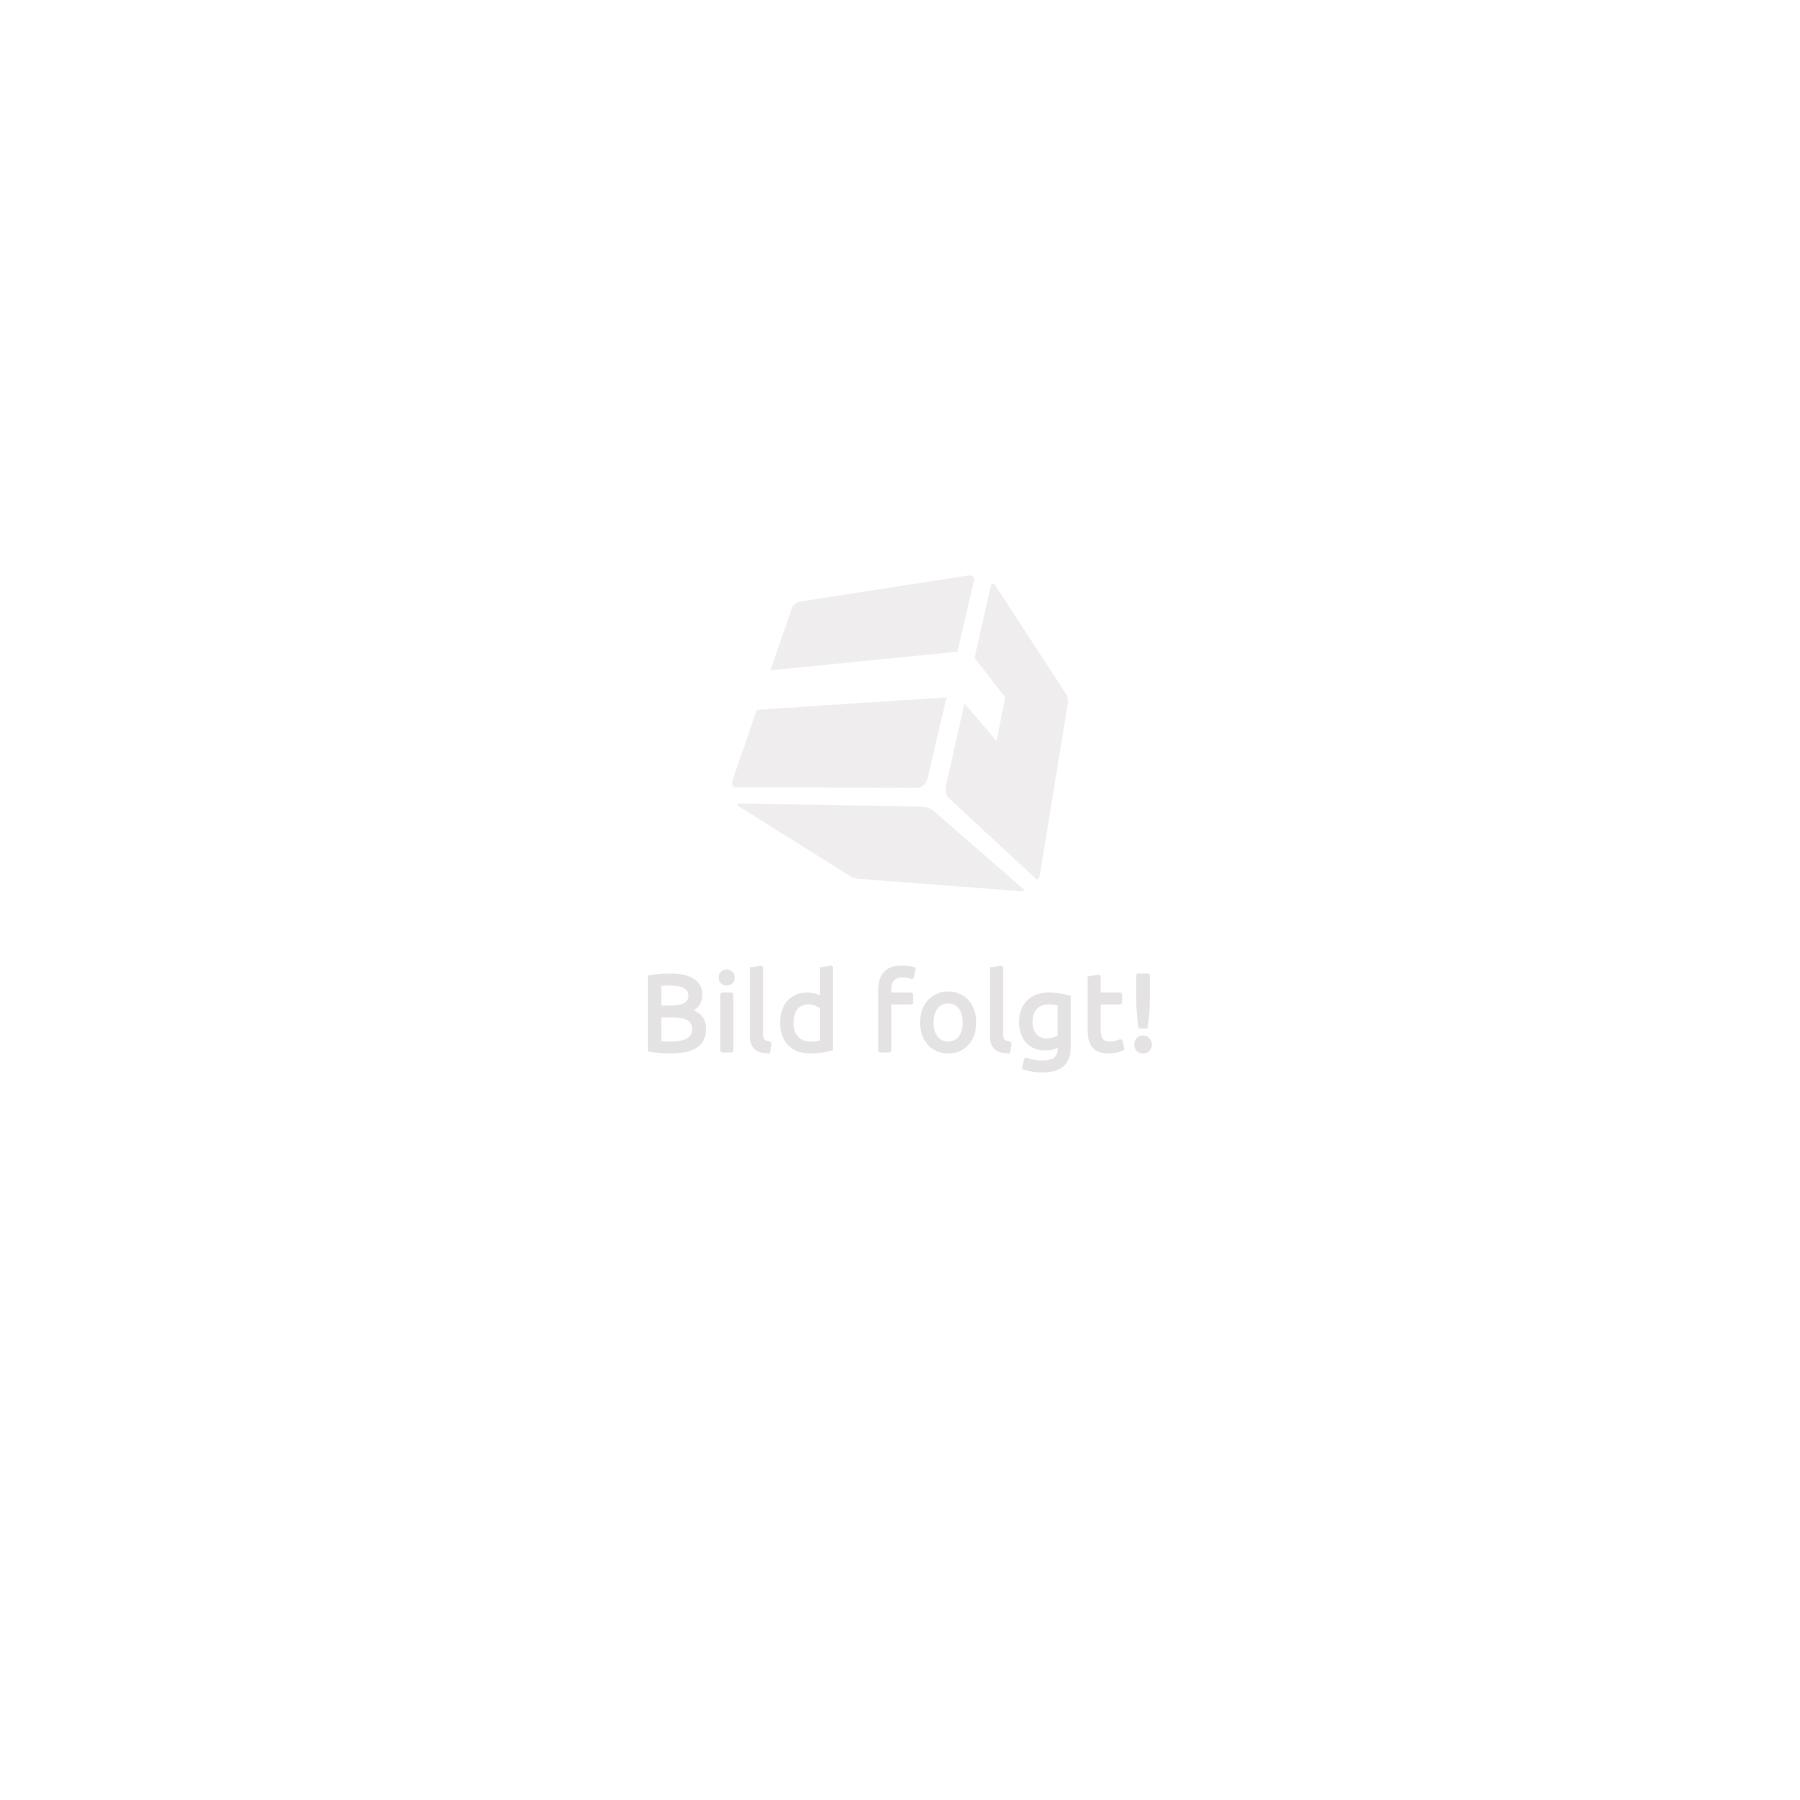 store lat ral double brise vue abri soleil aluminium r tractable 180x600cm gris ebay. Black Bedroom Furniture Sets. Home Design Ideas